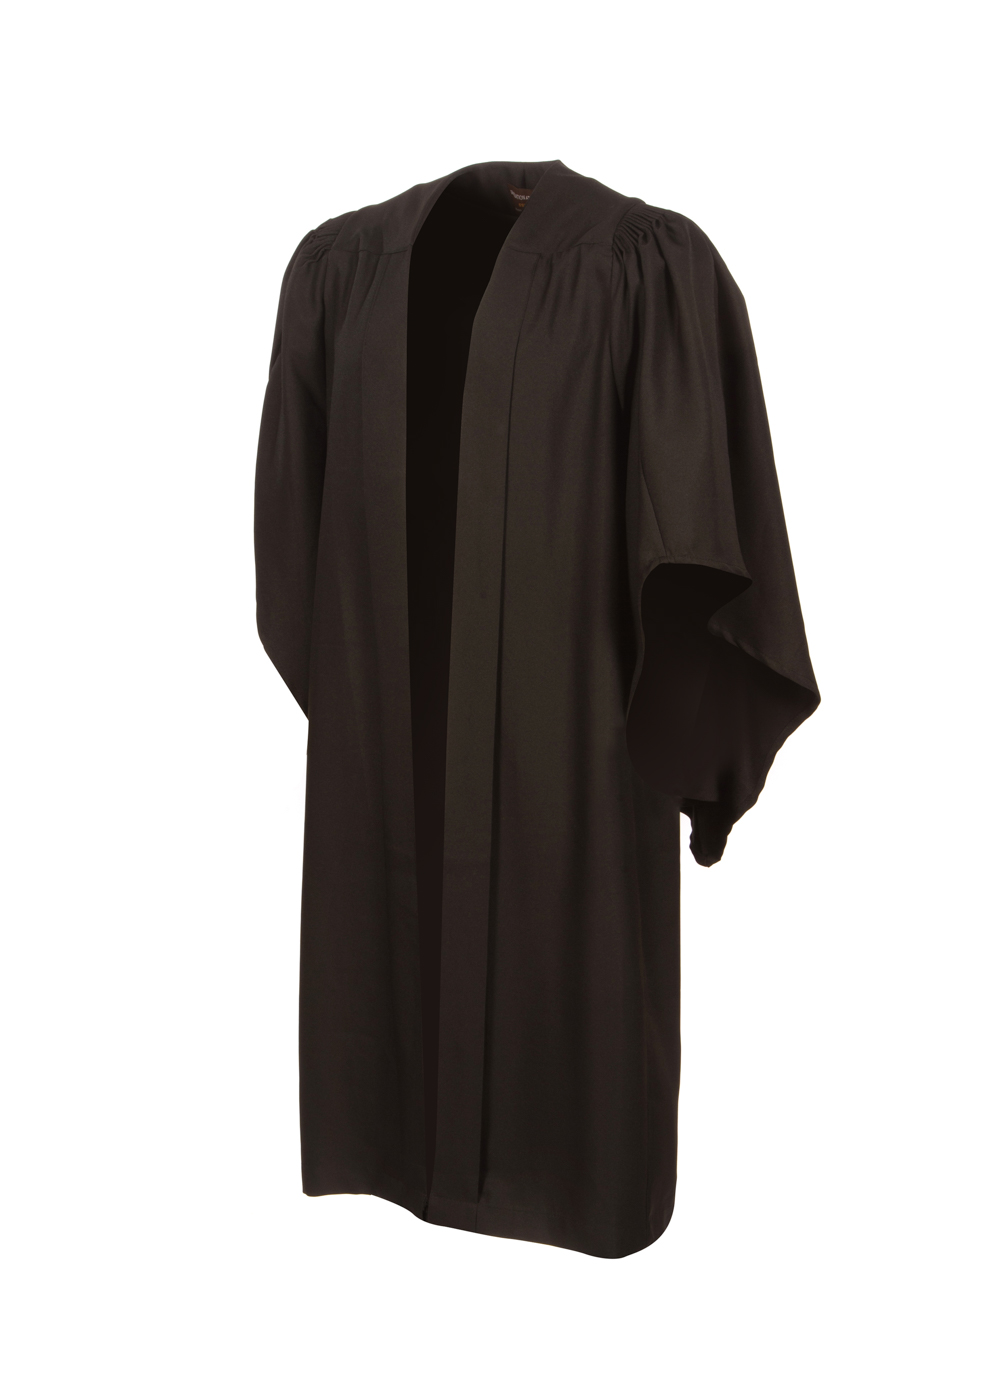 Academic Hood - Graduation Gowns | Graduation Attire